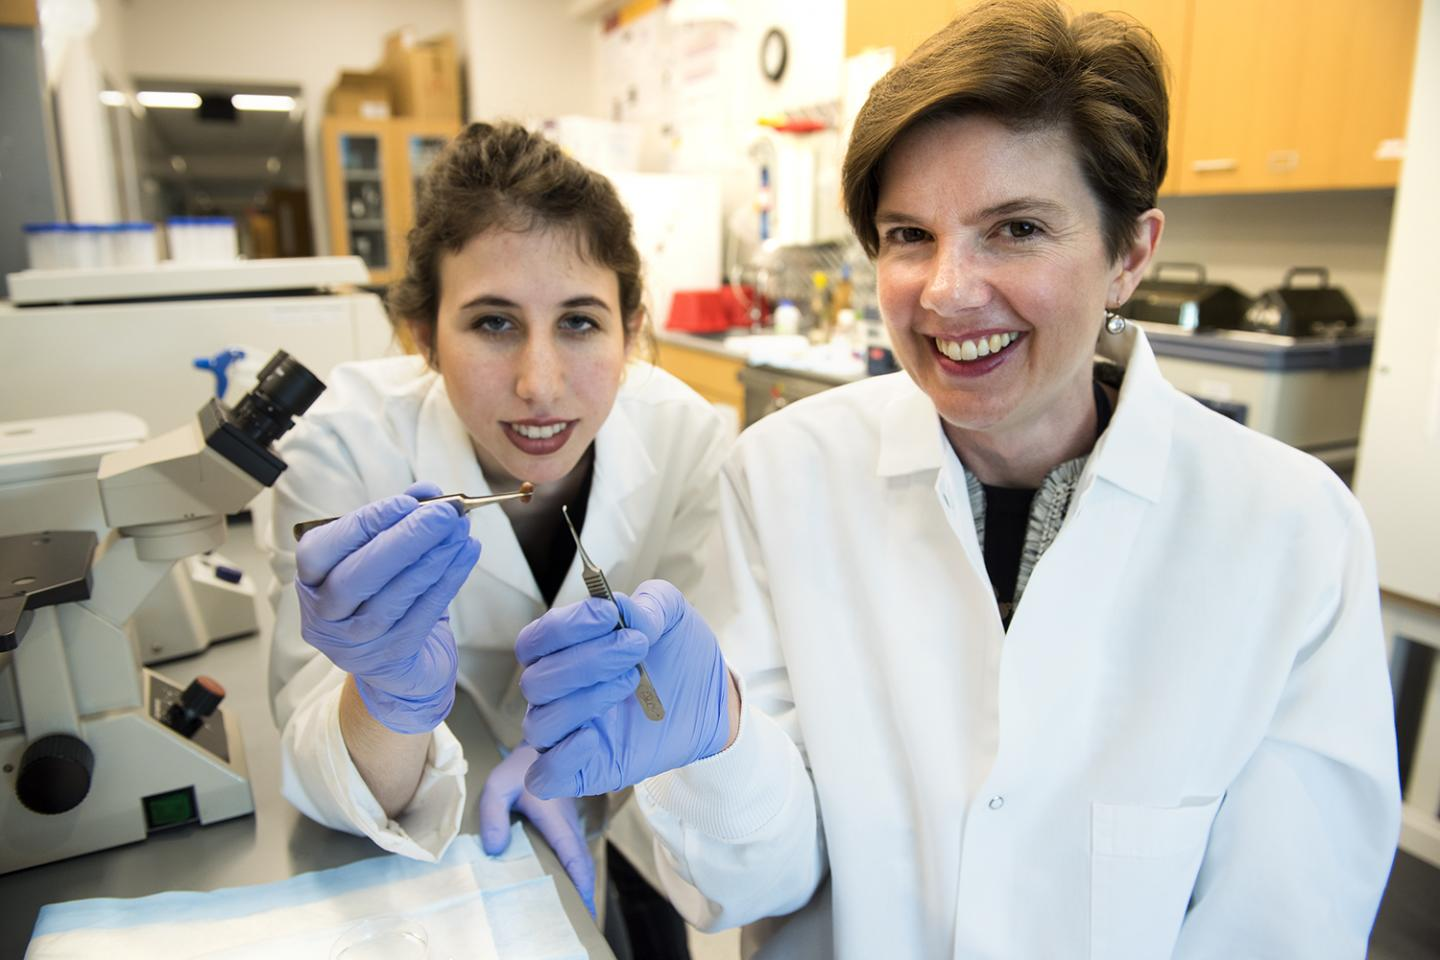 Associate Professor Brenda Ogle (right) and Ph.D. student Molly Kupfer (left). Credit: Patrick O'Leary, University of Minnesota